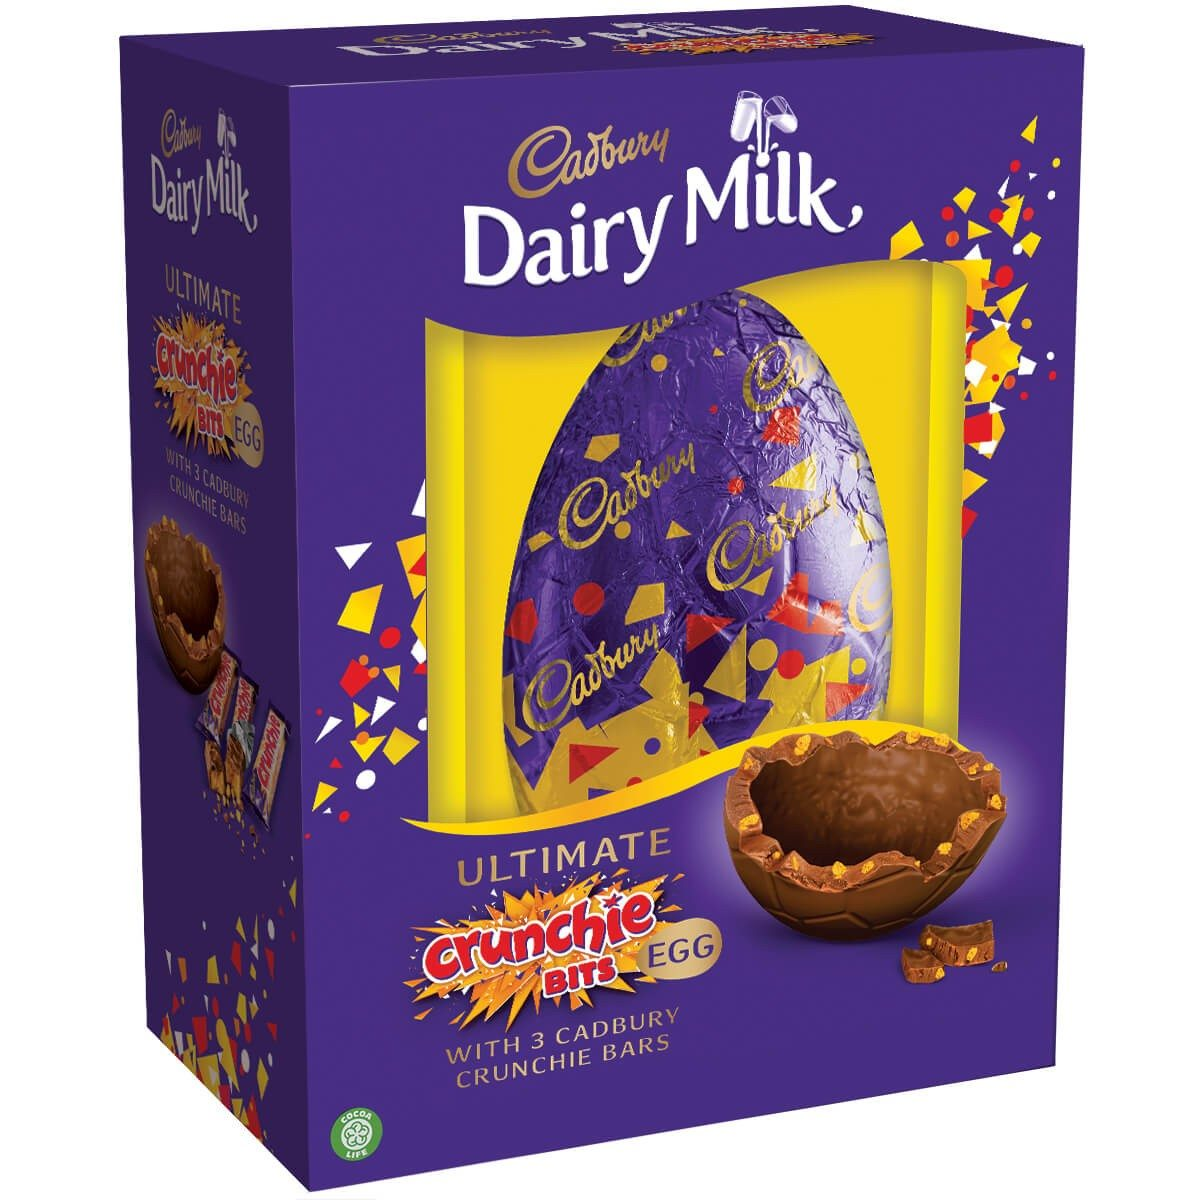 cdm ultimate crunchie bits egg How To Get A FREE £12 Cadbury Chocolate Egg Just In Time For Easter